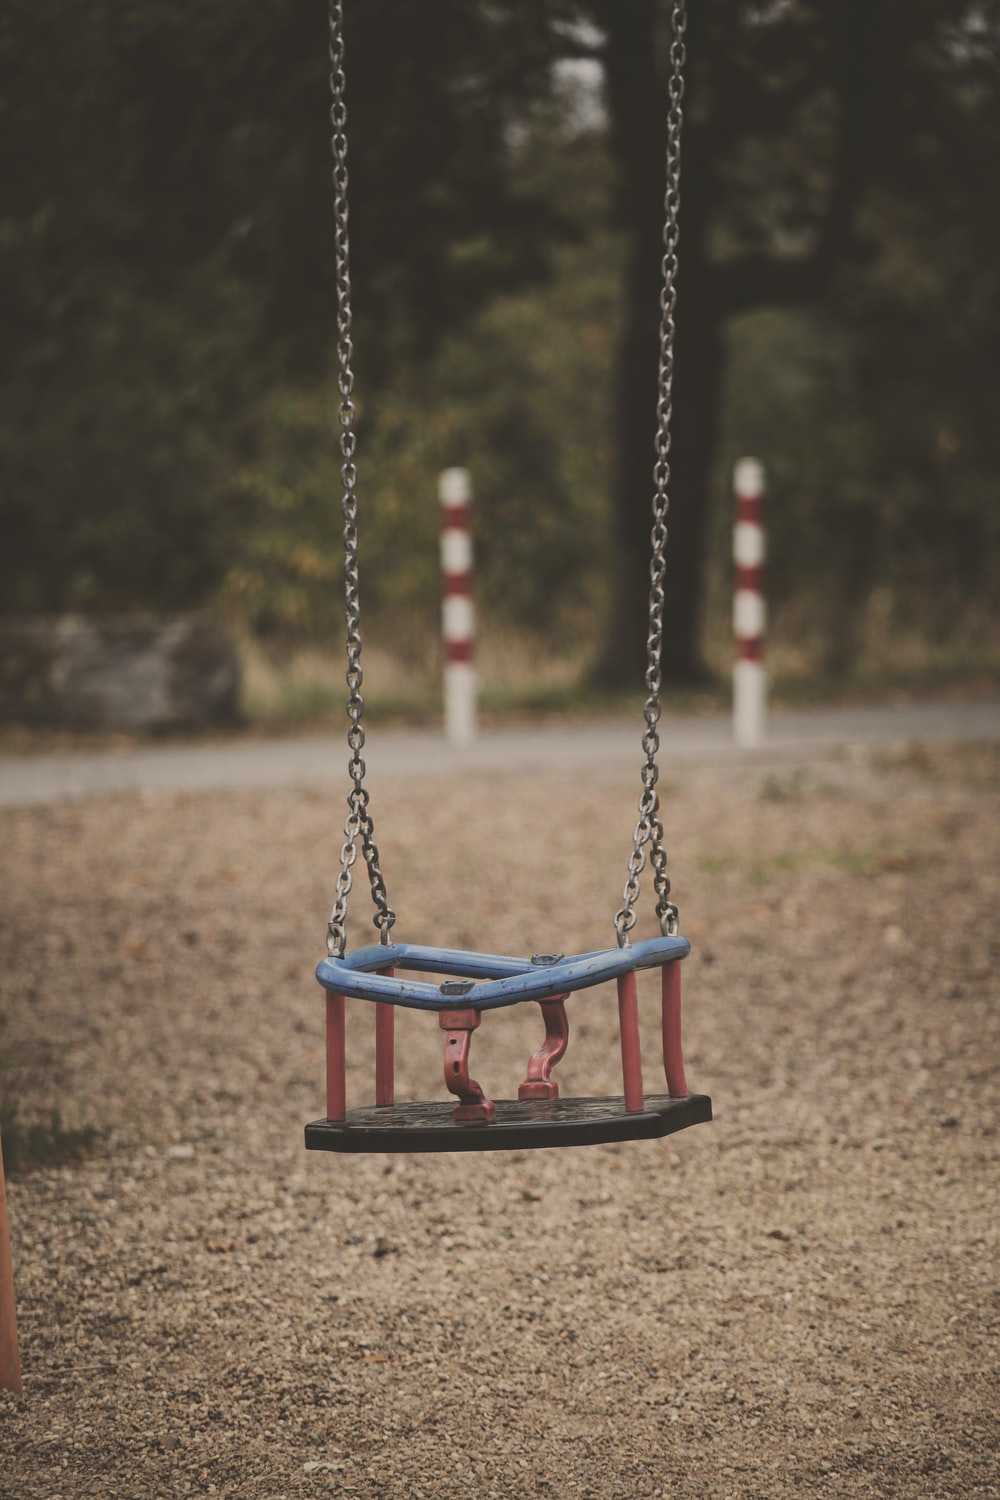 brown, red, and white metal swing macro photography